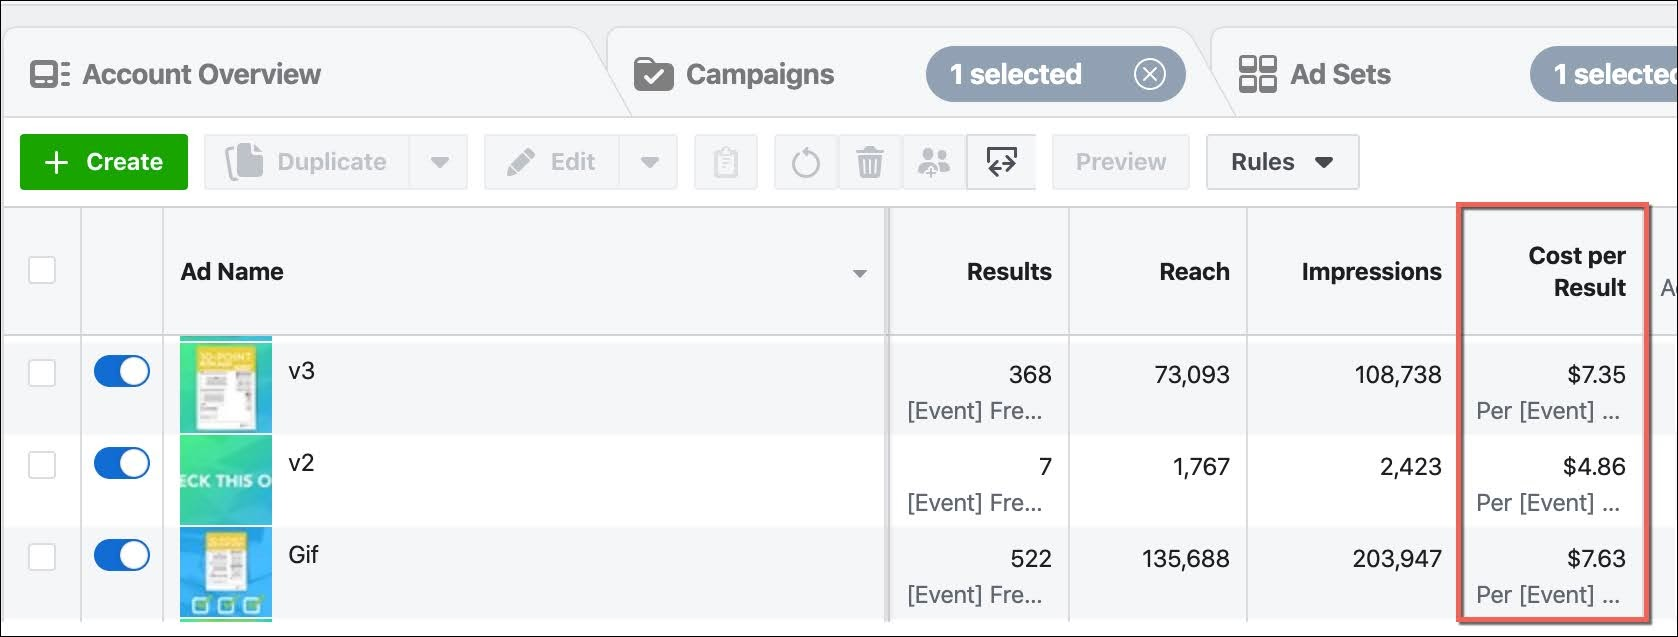 Let's look at Ads Manager. Below are ads from a campaign we're running to generate leads with a Lead Magnet for our blog audit.